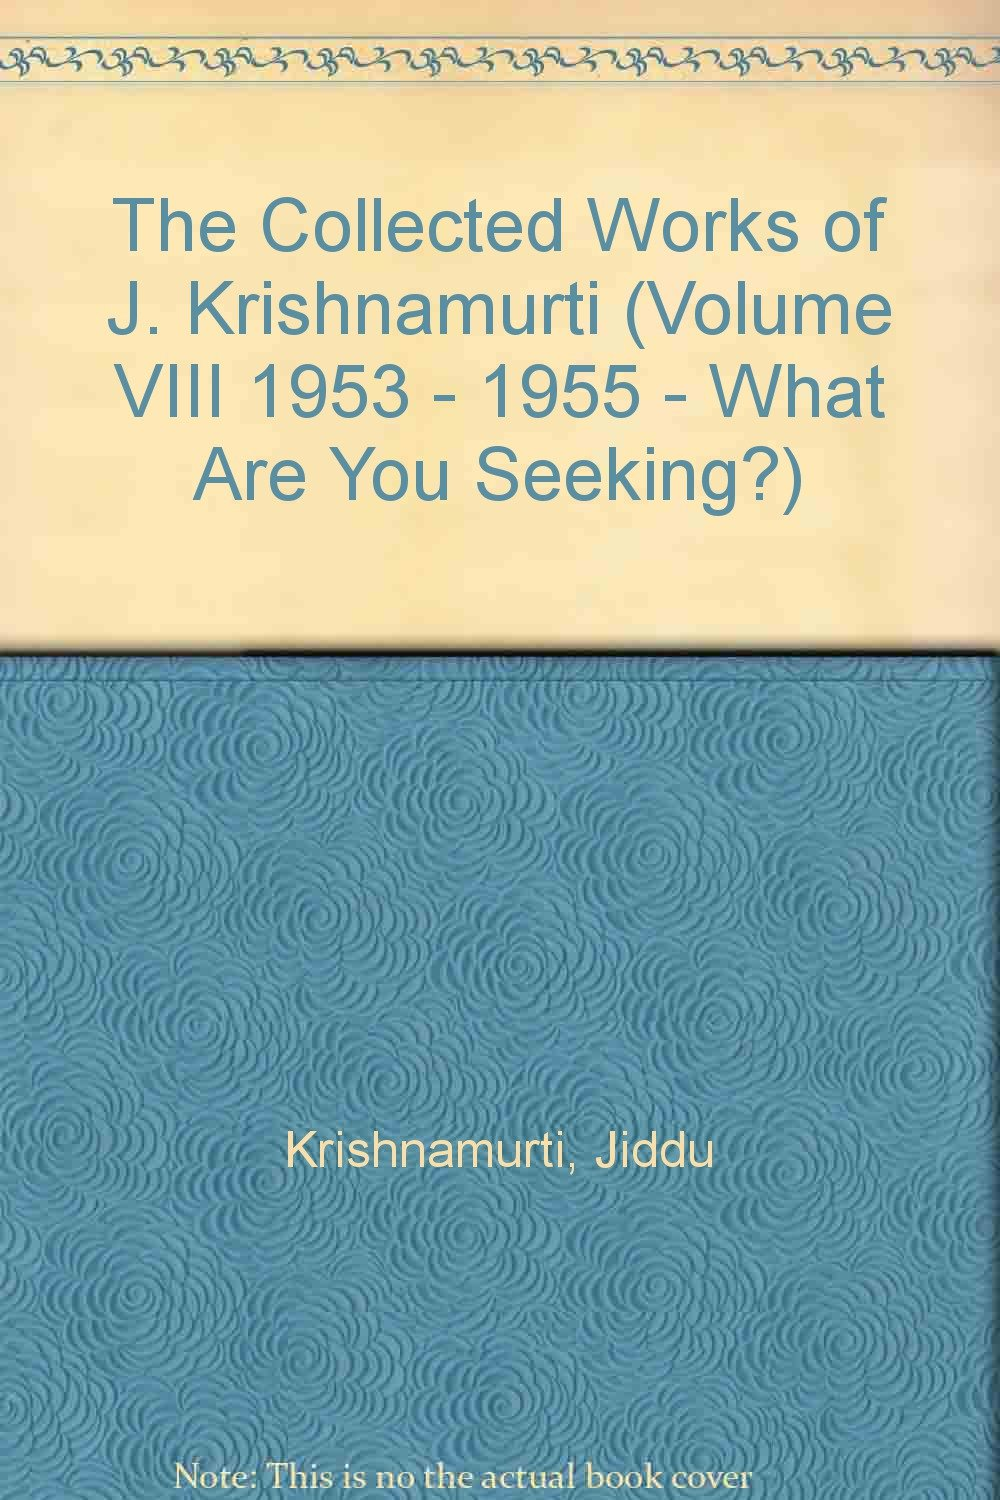 The Collected Works of J Krishnamurti 1953-1955: What Are You Seeking?